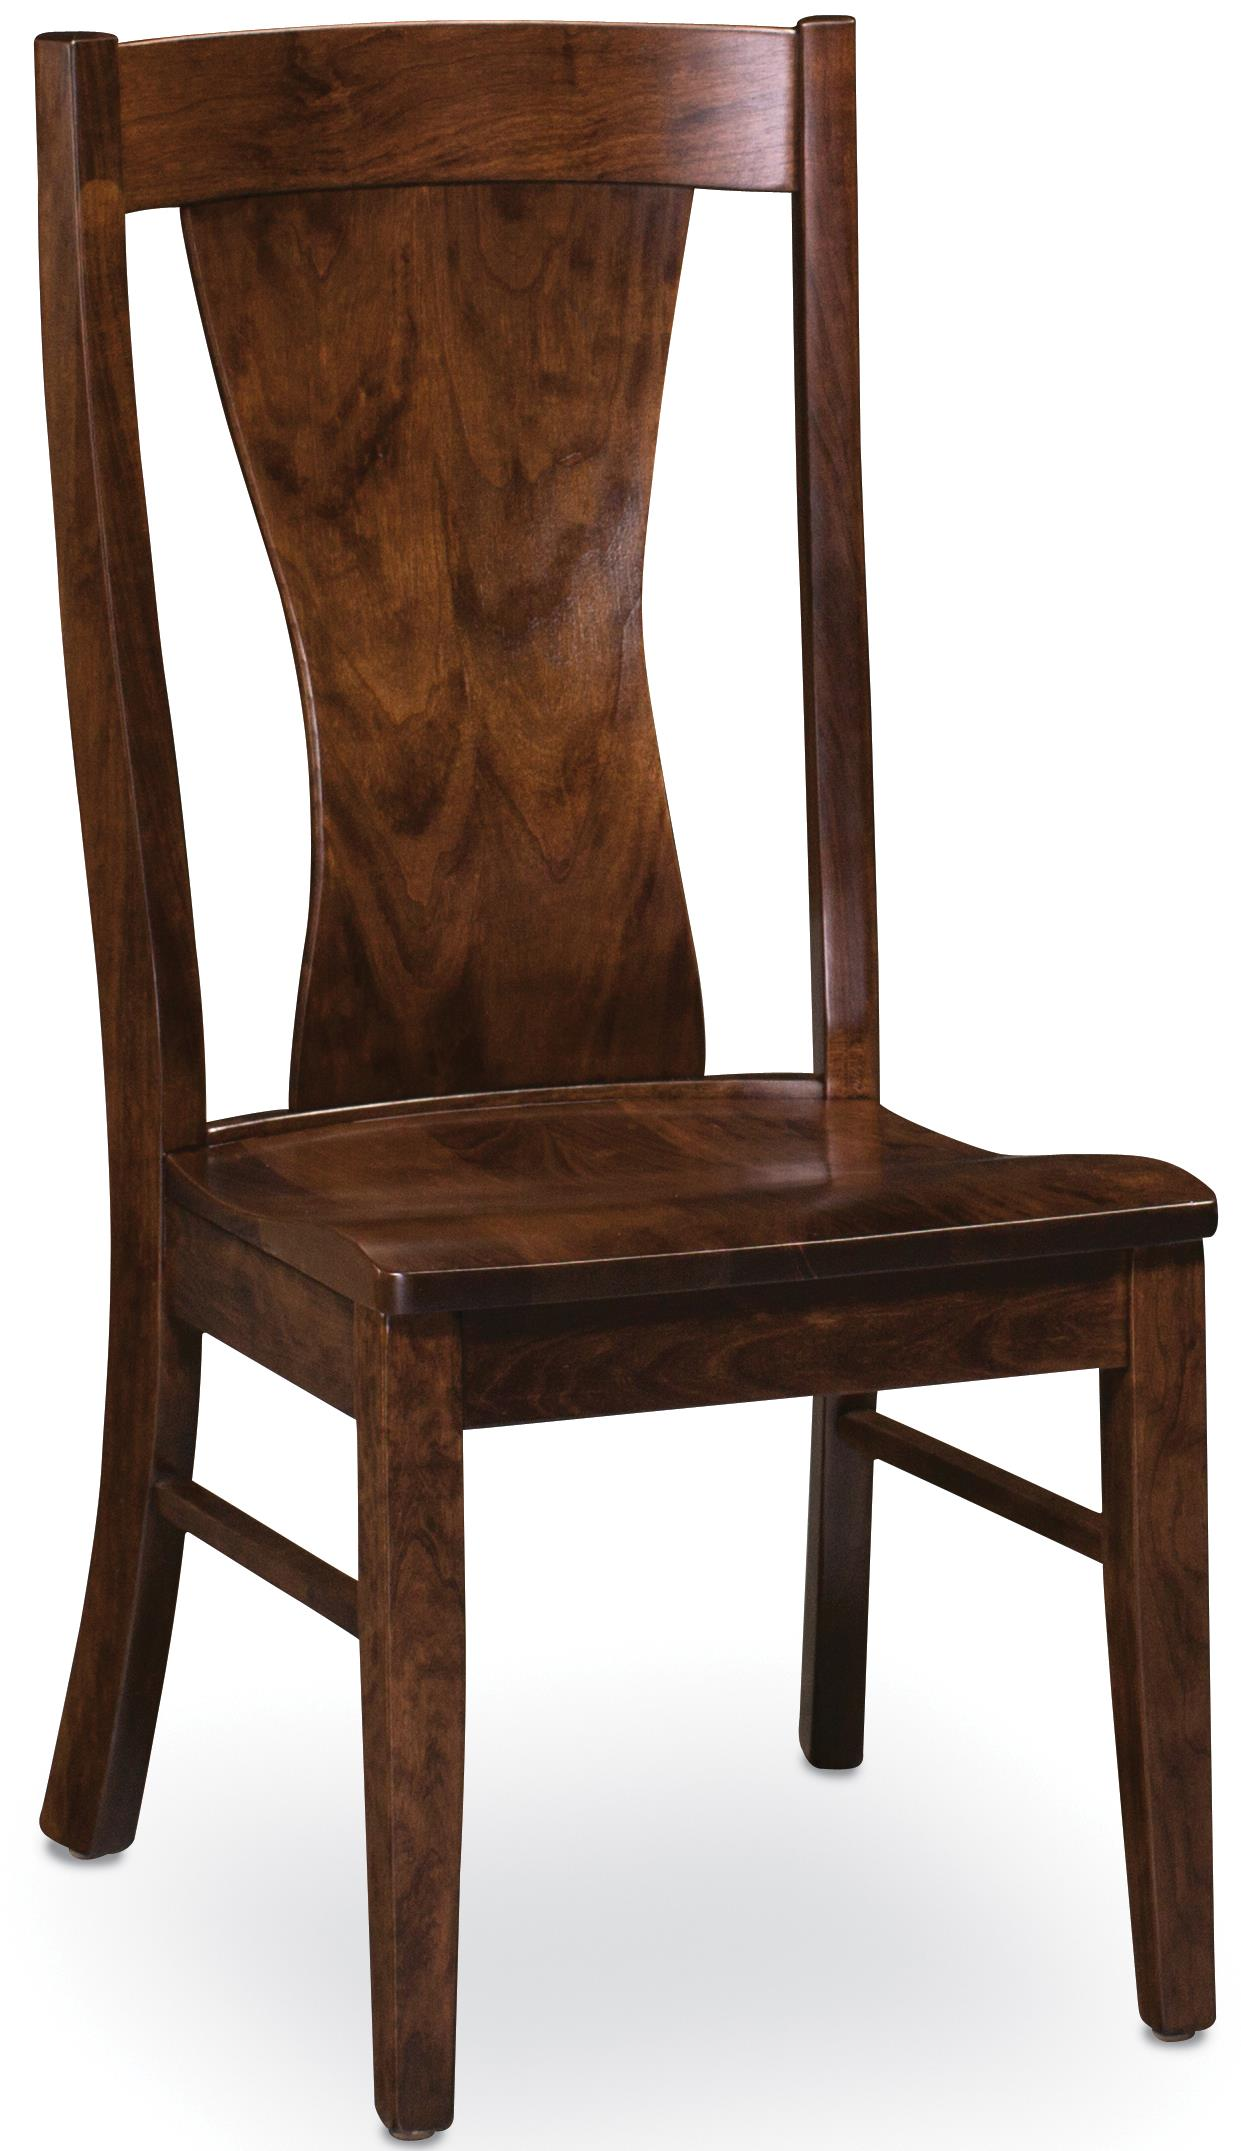 Simply Amish Chairs Joseph Side Chair - Item Number: ECJSP-02A-W-C30